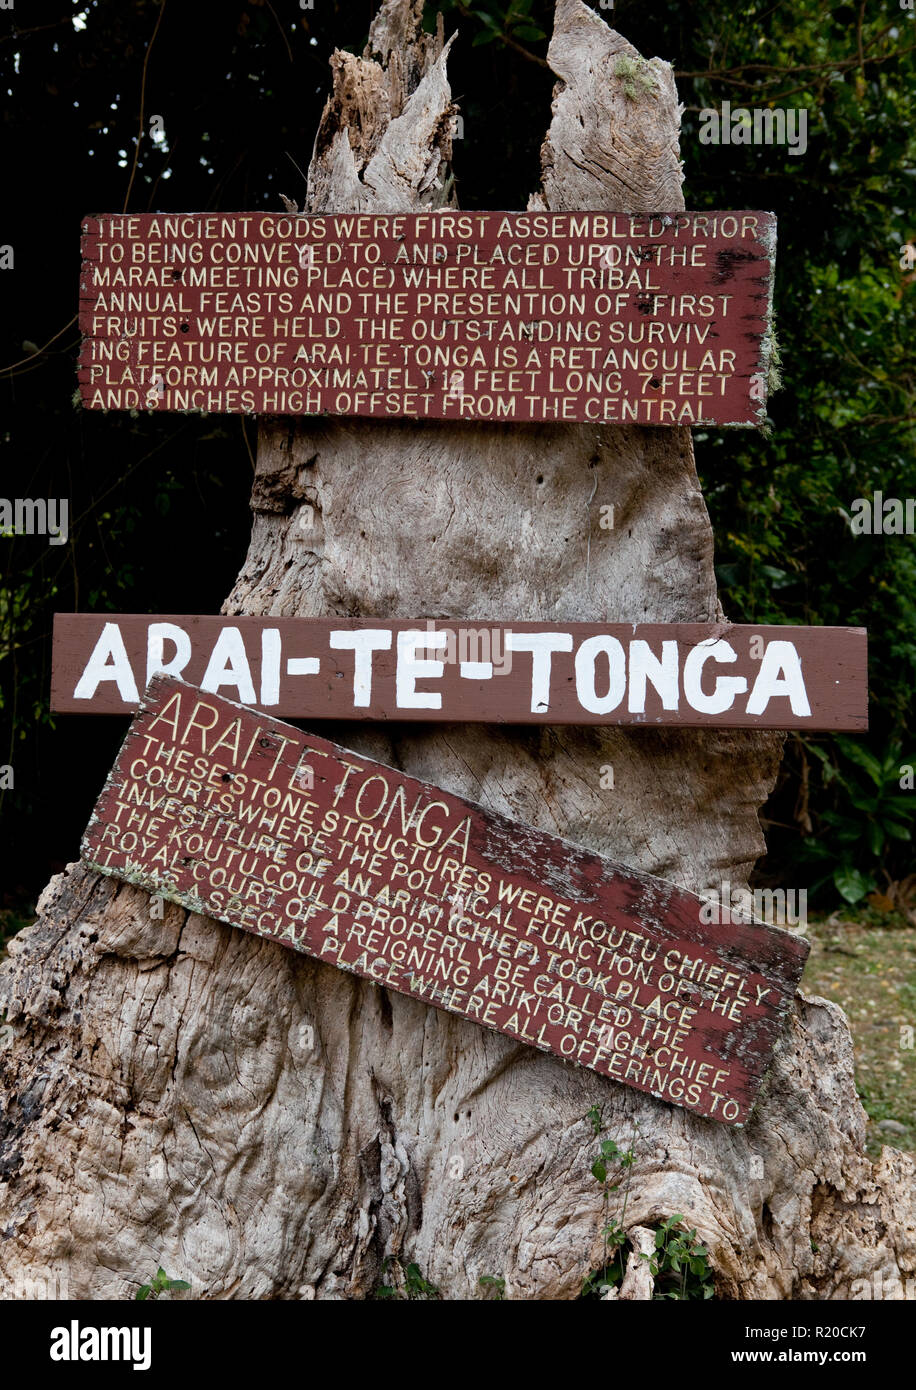 Arai Te Tonga info tree on Rarotonga, Cook Islands. - Stock Image